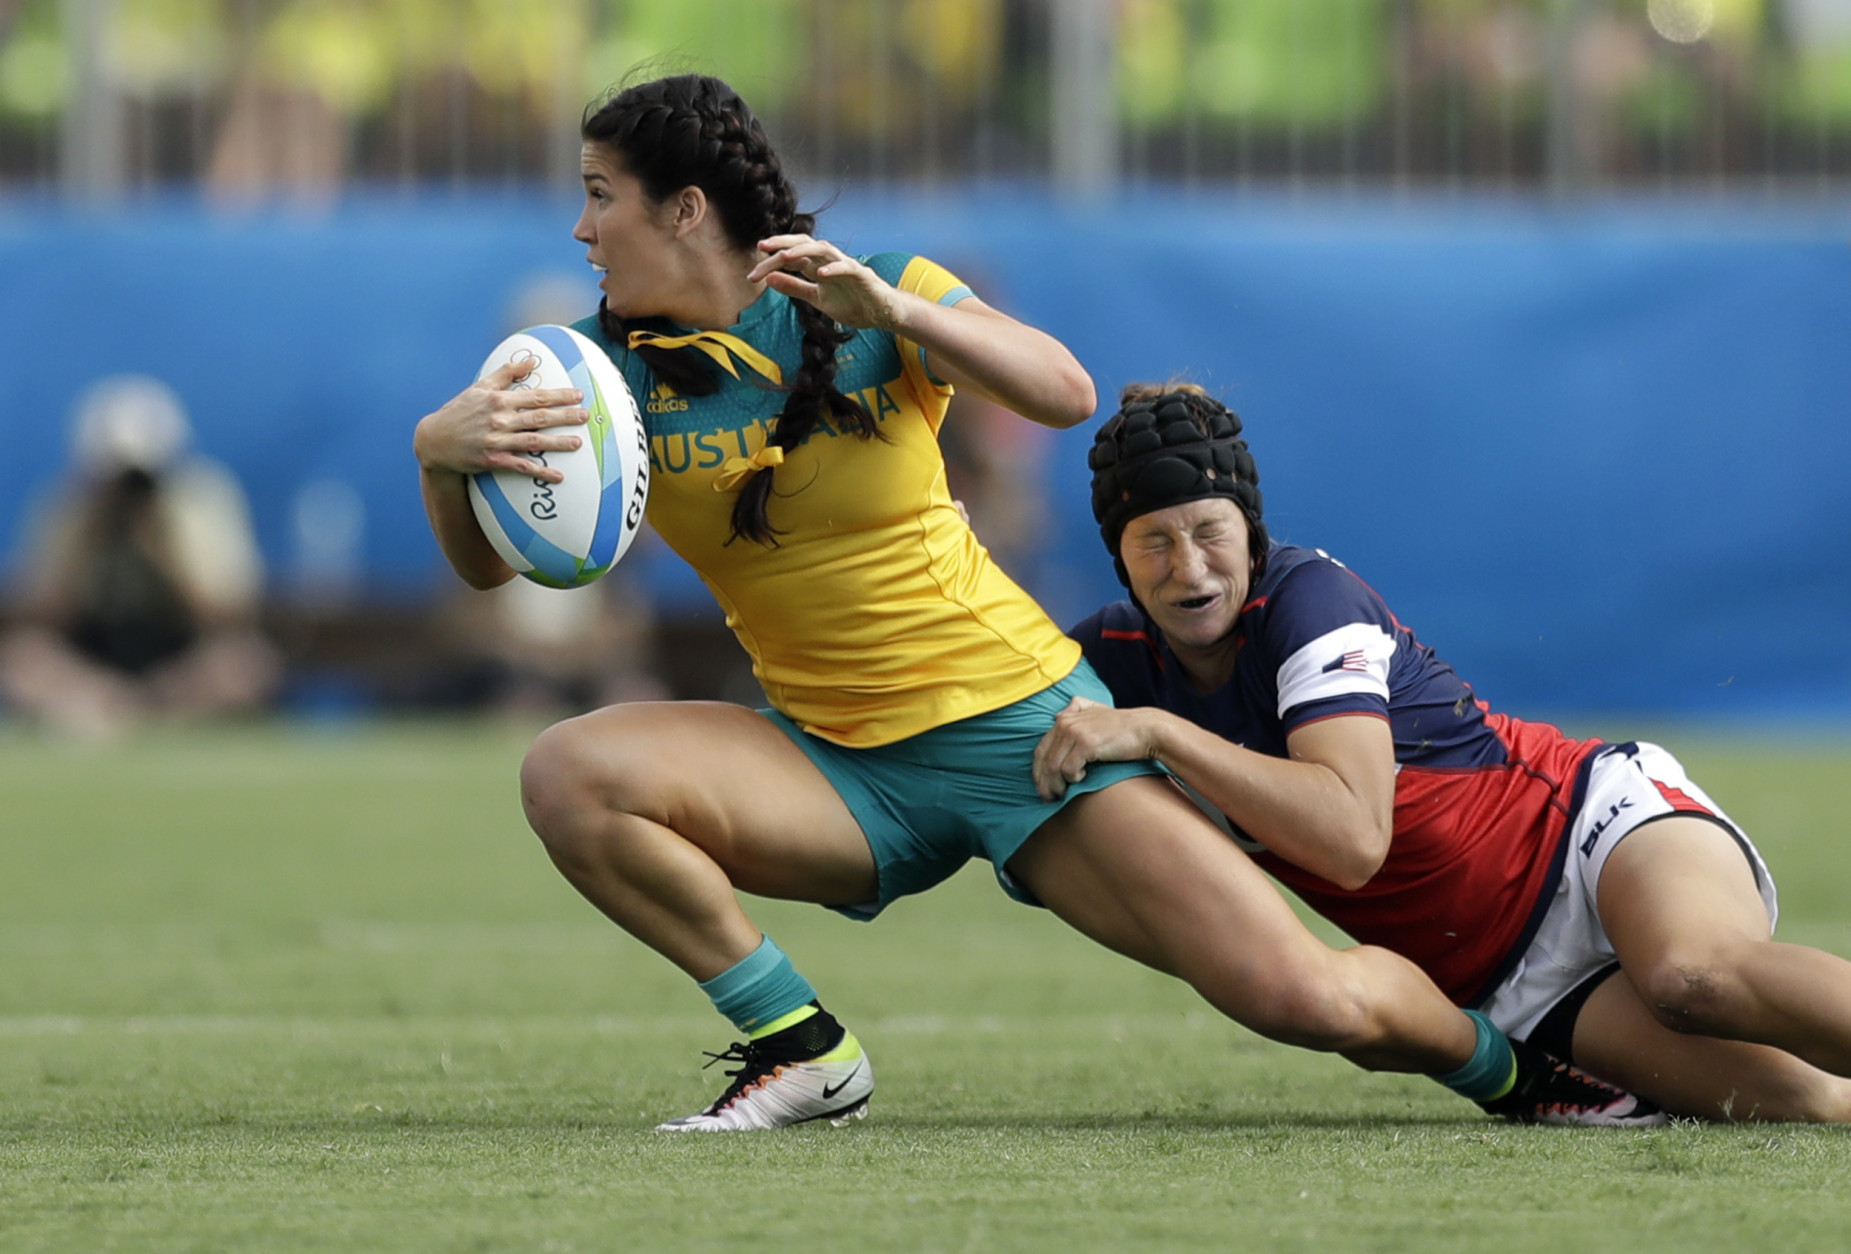 Australia's Charlotte Caslick, left, is tackled by USA's Lauren Doyle, during the women's rugby sevens match at the Summer Olympics in Rio de Janeiro, Brazil, Sunday, Aug. 7, 2016. (AP Photo/Themba Hadebe)